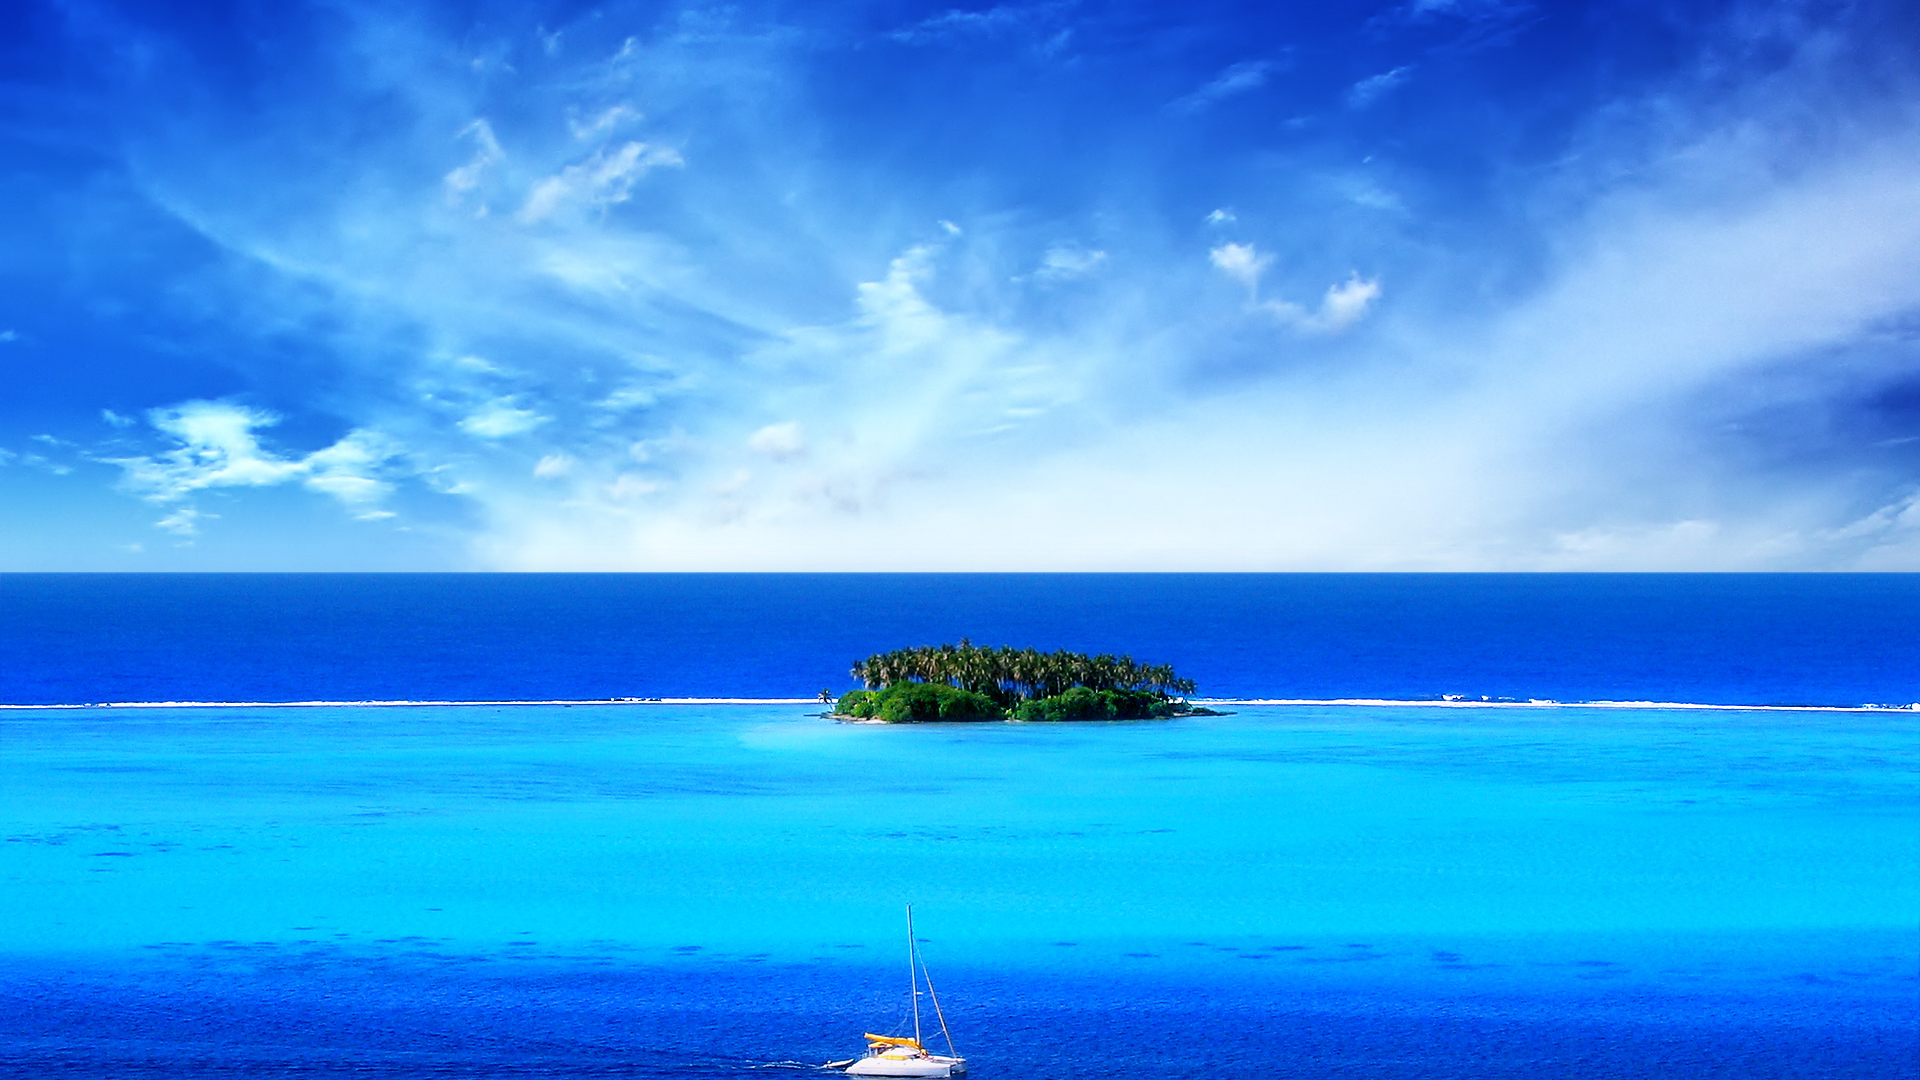 Perfect Island Wallpaper 1920x1080